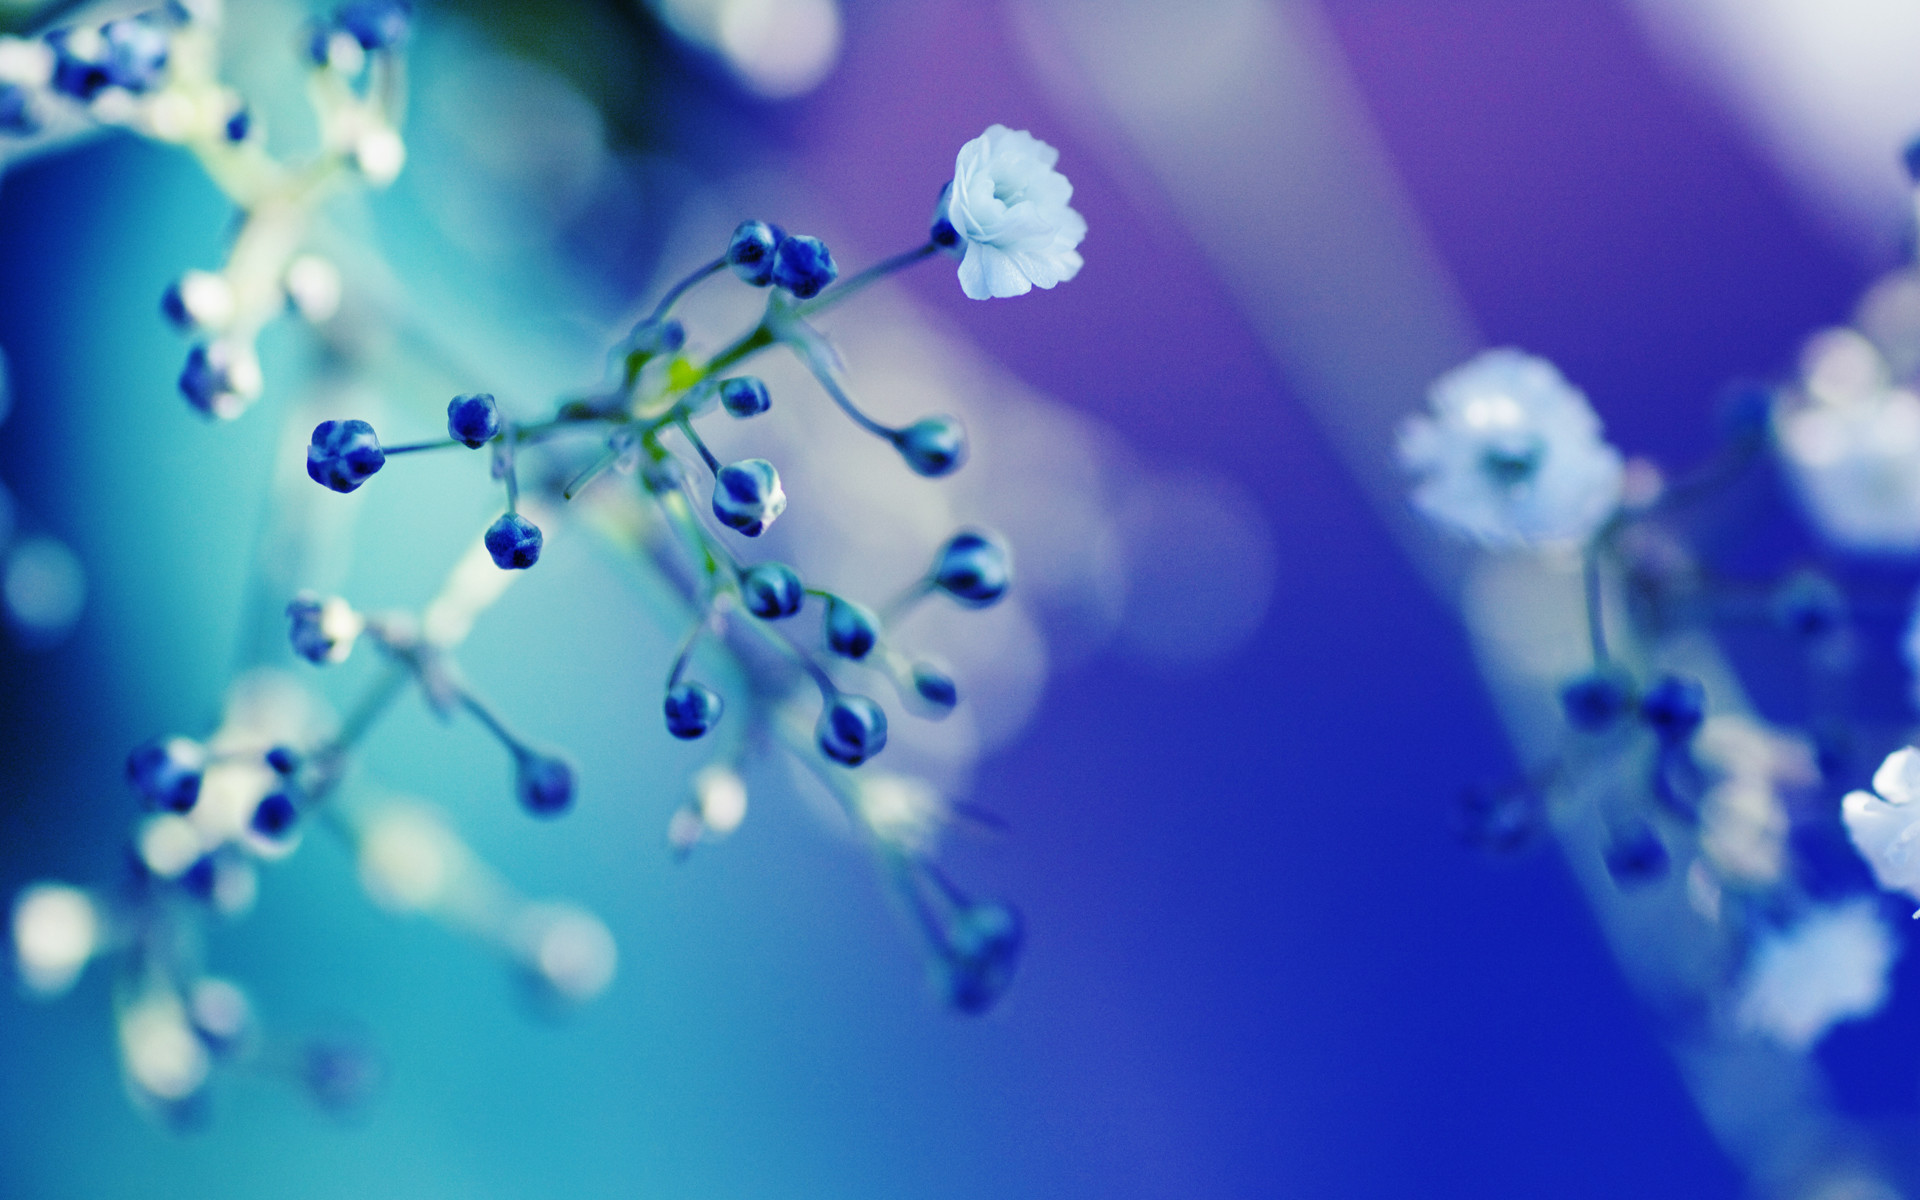 1920x1200 Flower HD Wallpaper | Background Image |  | ID:78376 - Wallpaper  Abyss